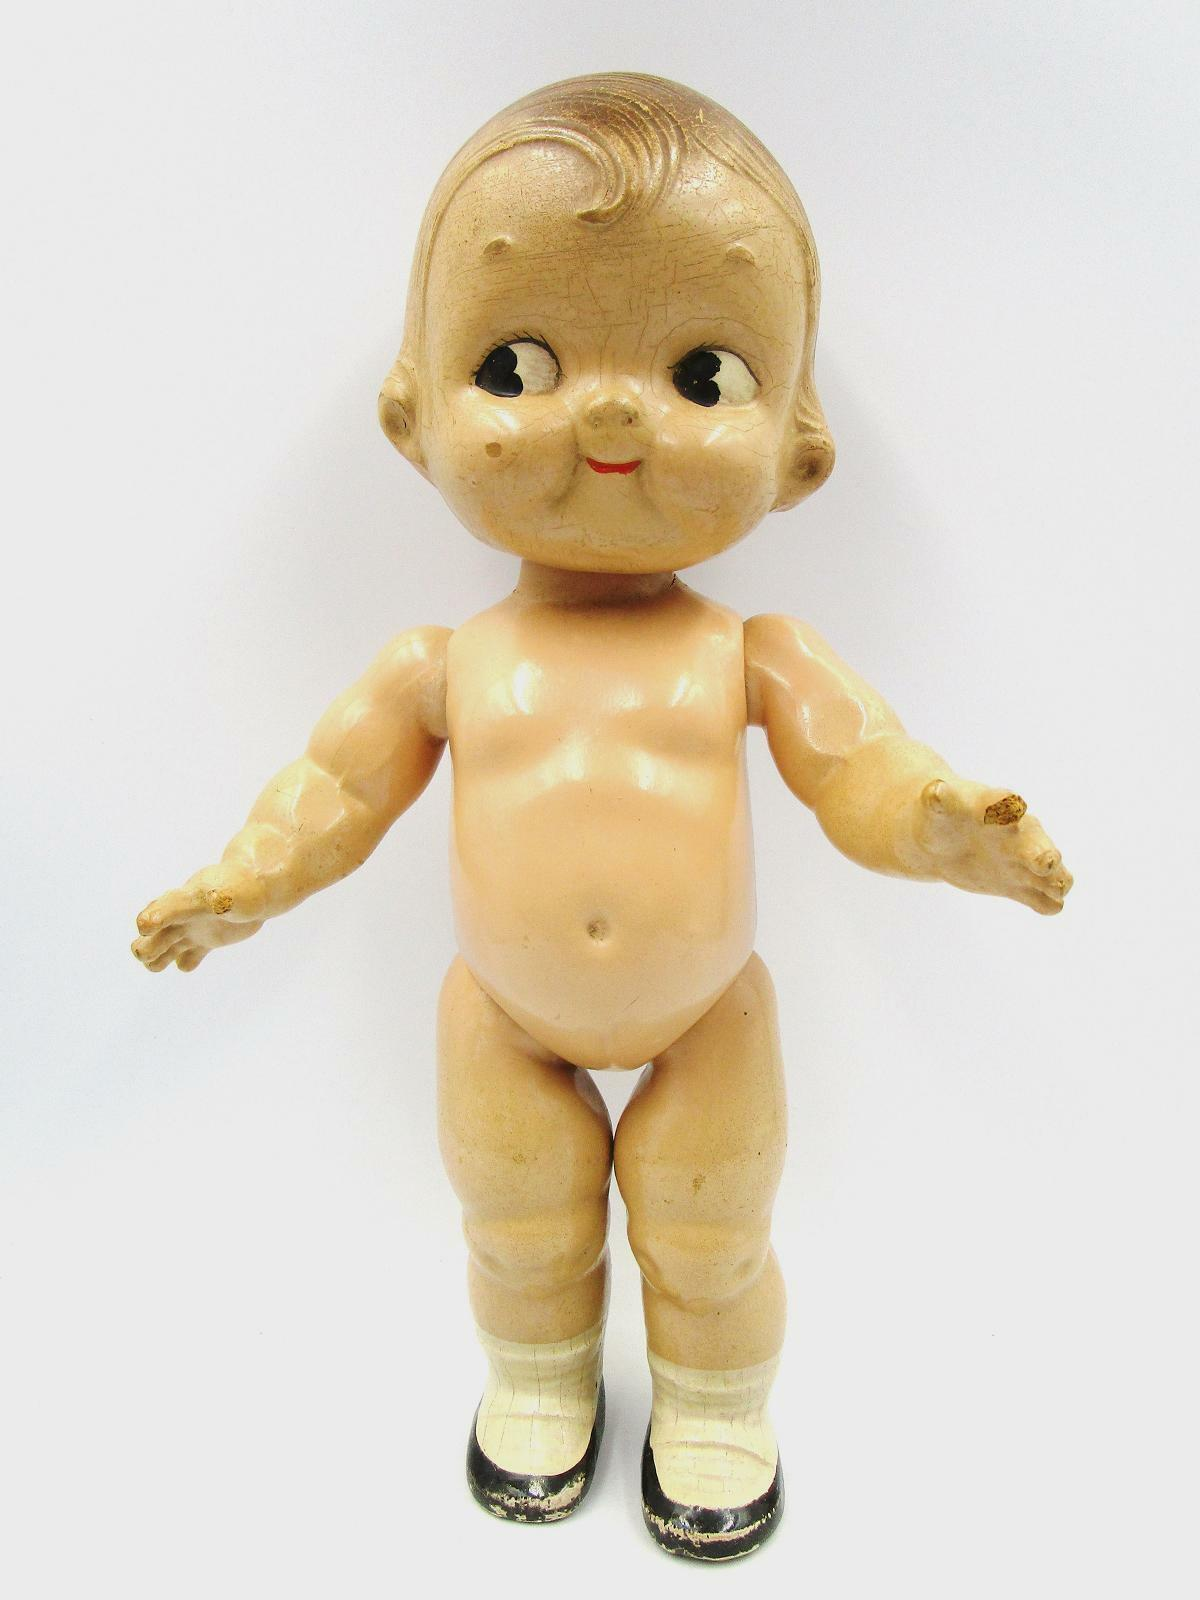 CAMPBELL SOUP KID DOLL All Composition Horsman 12 In. 1940 s Side Glancing Eyes - $45.00